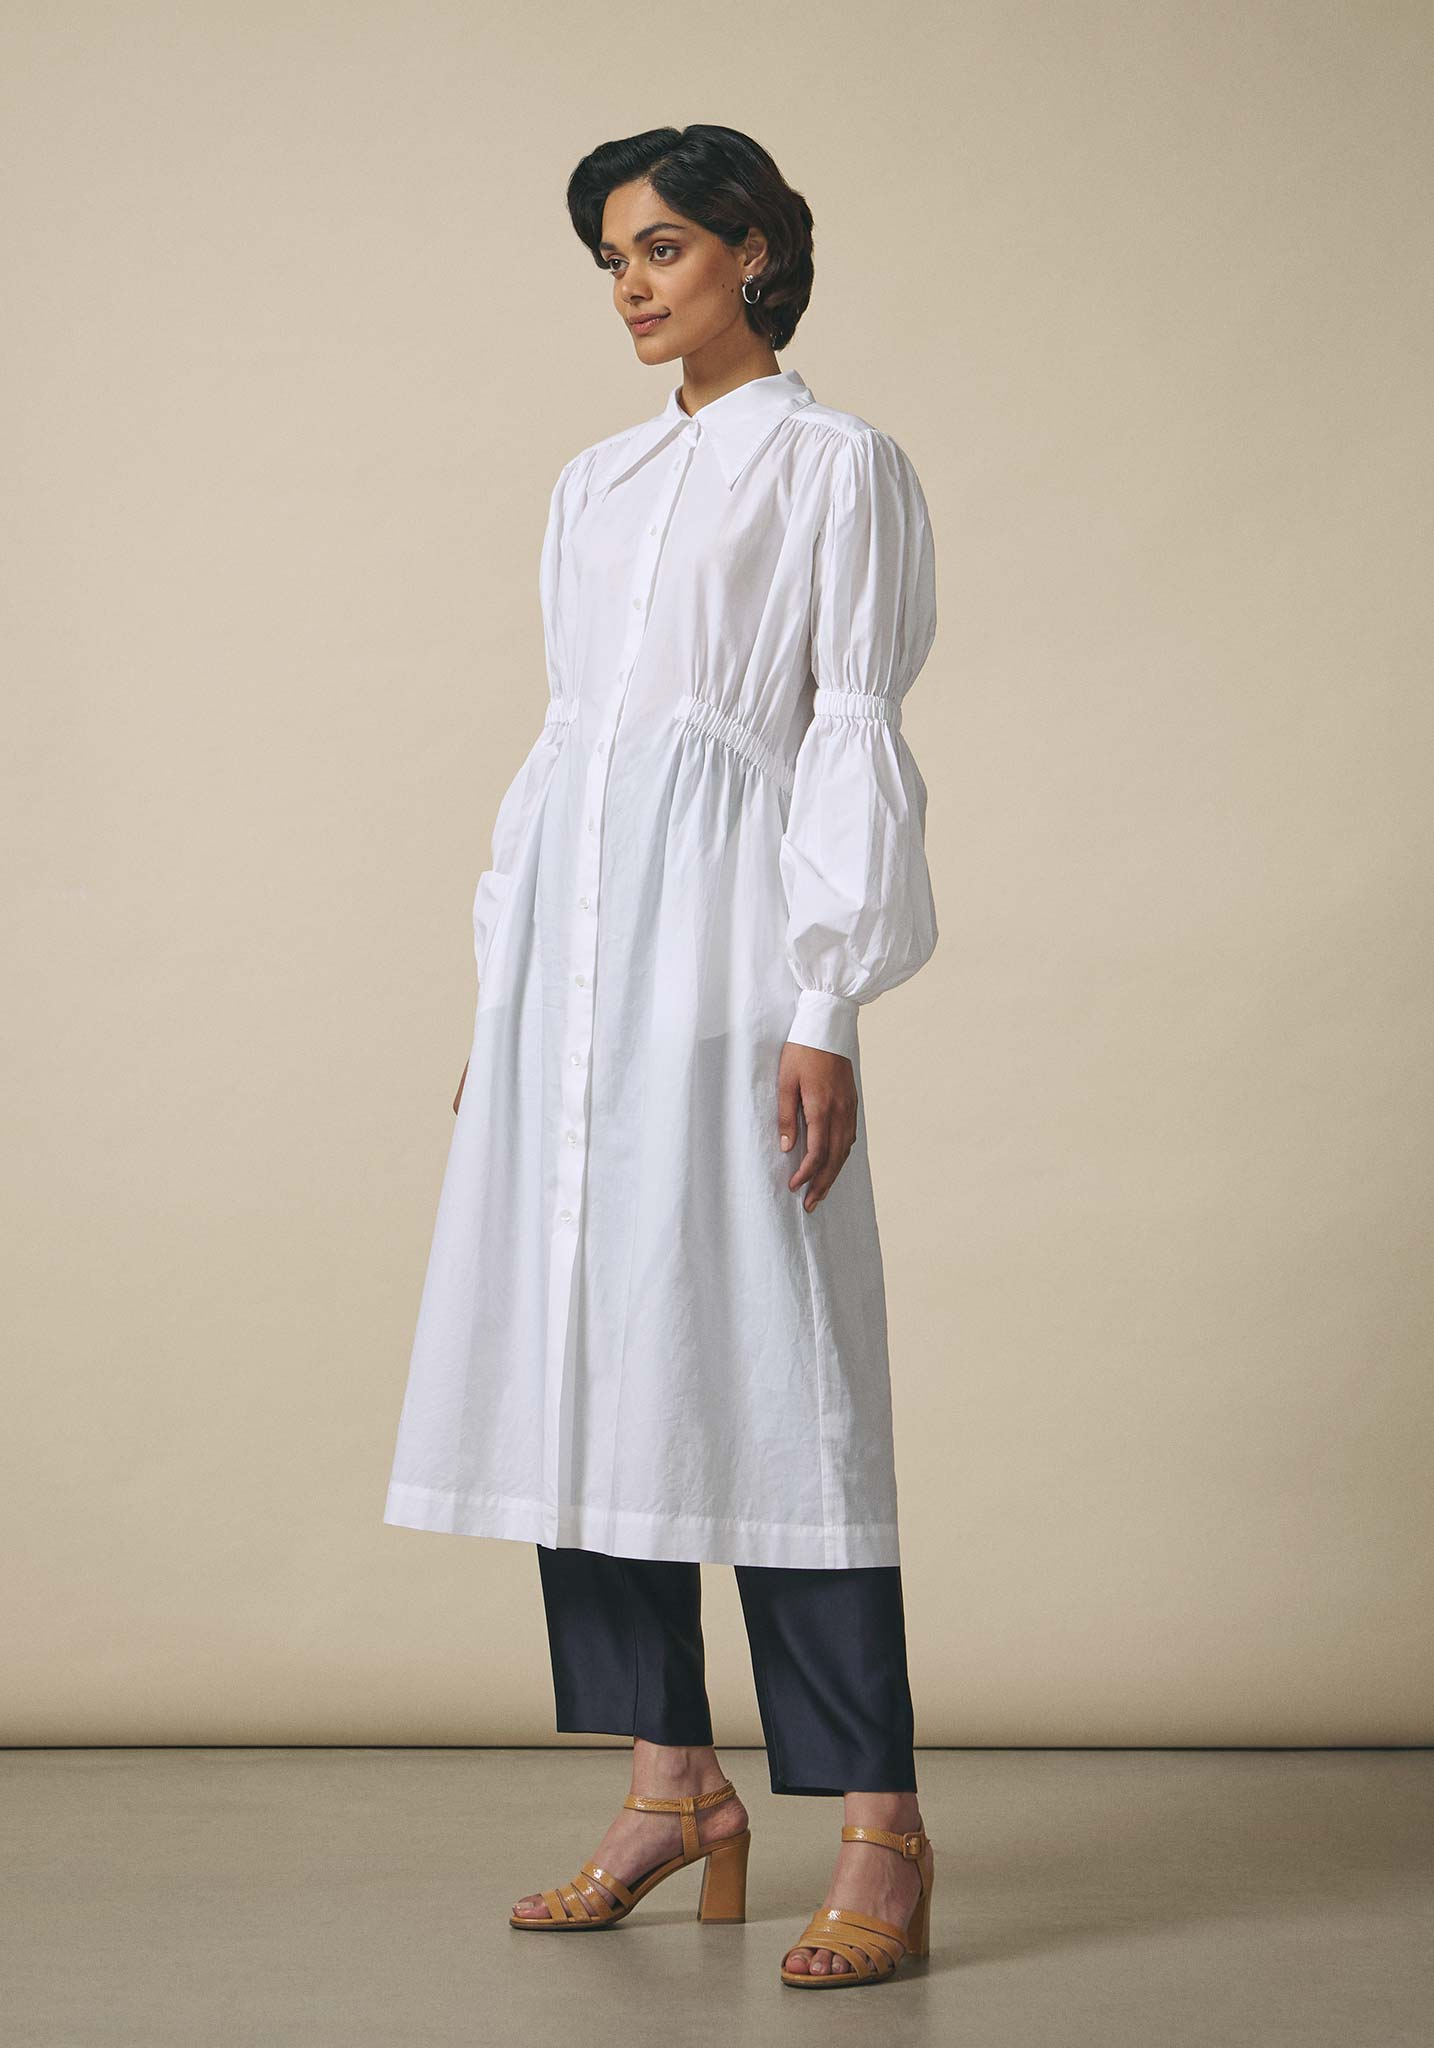 Dhruv Kapoor, Elasticated White Shirt Dress